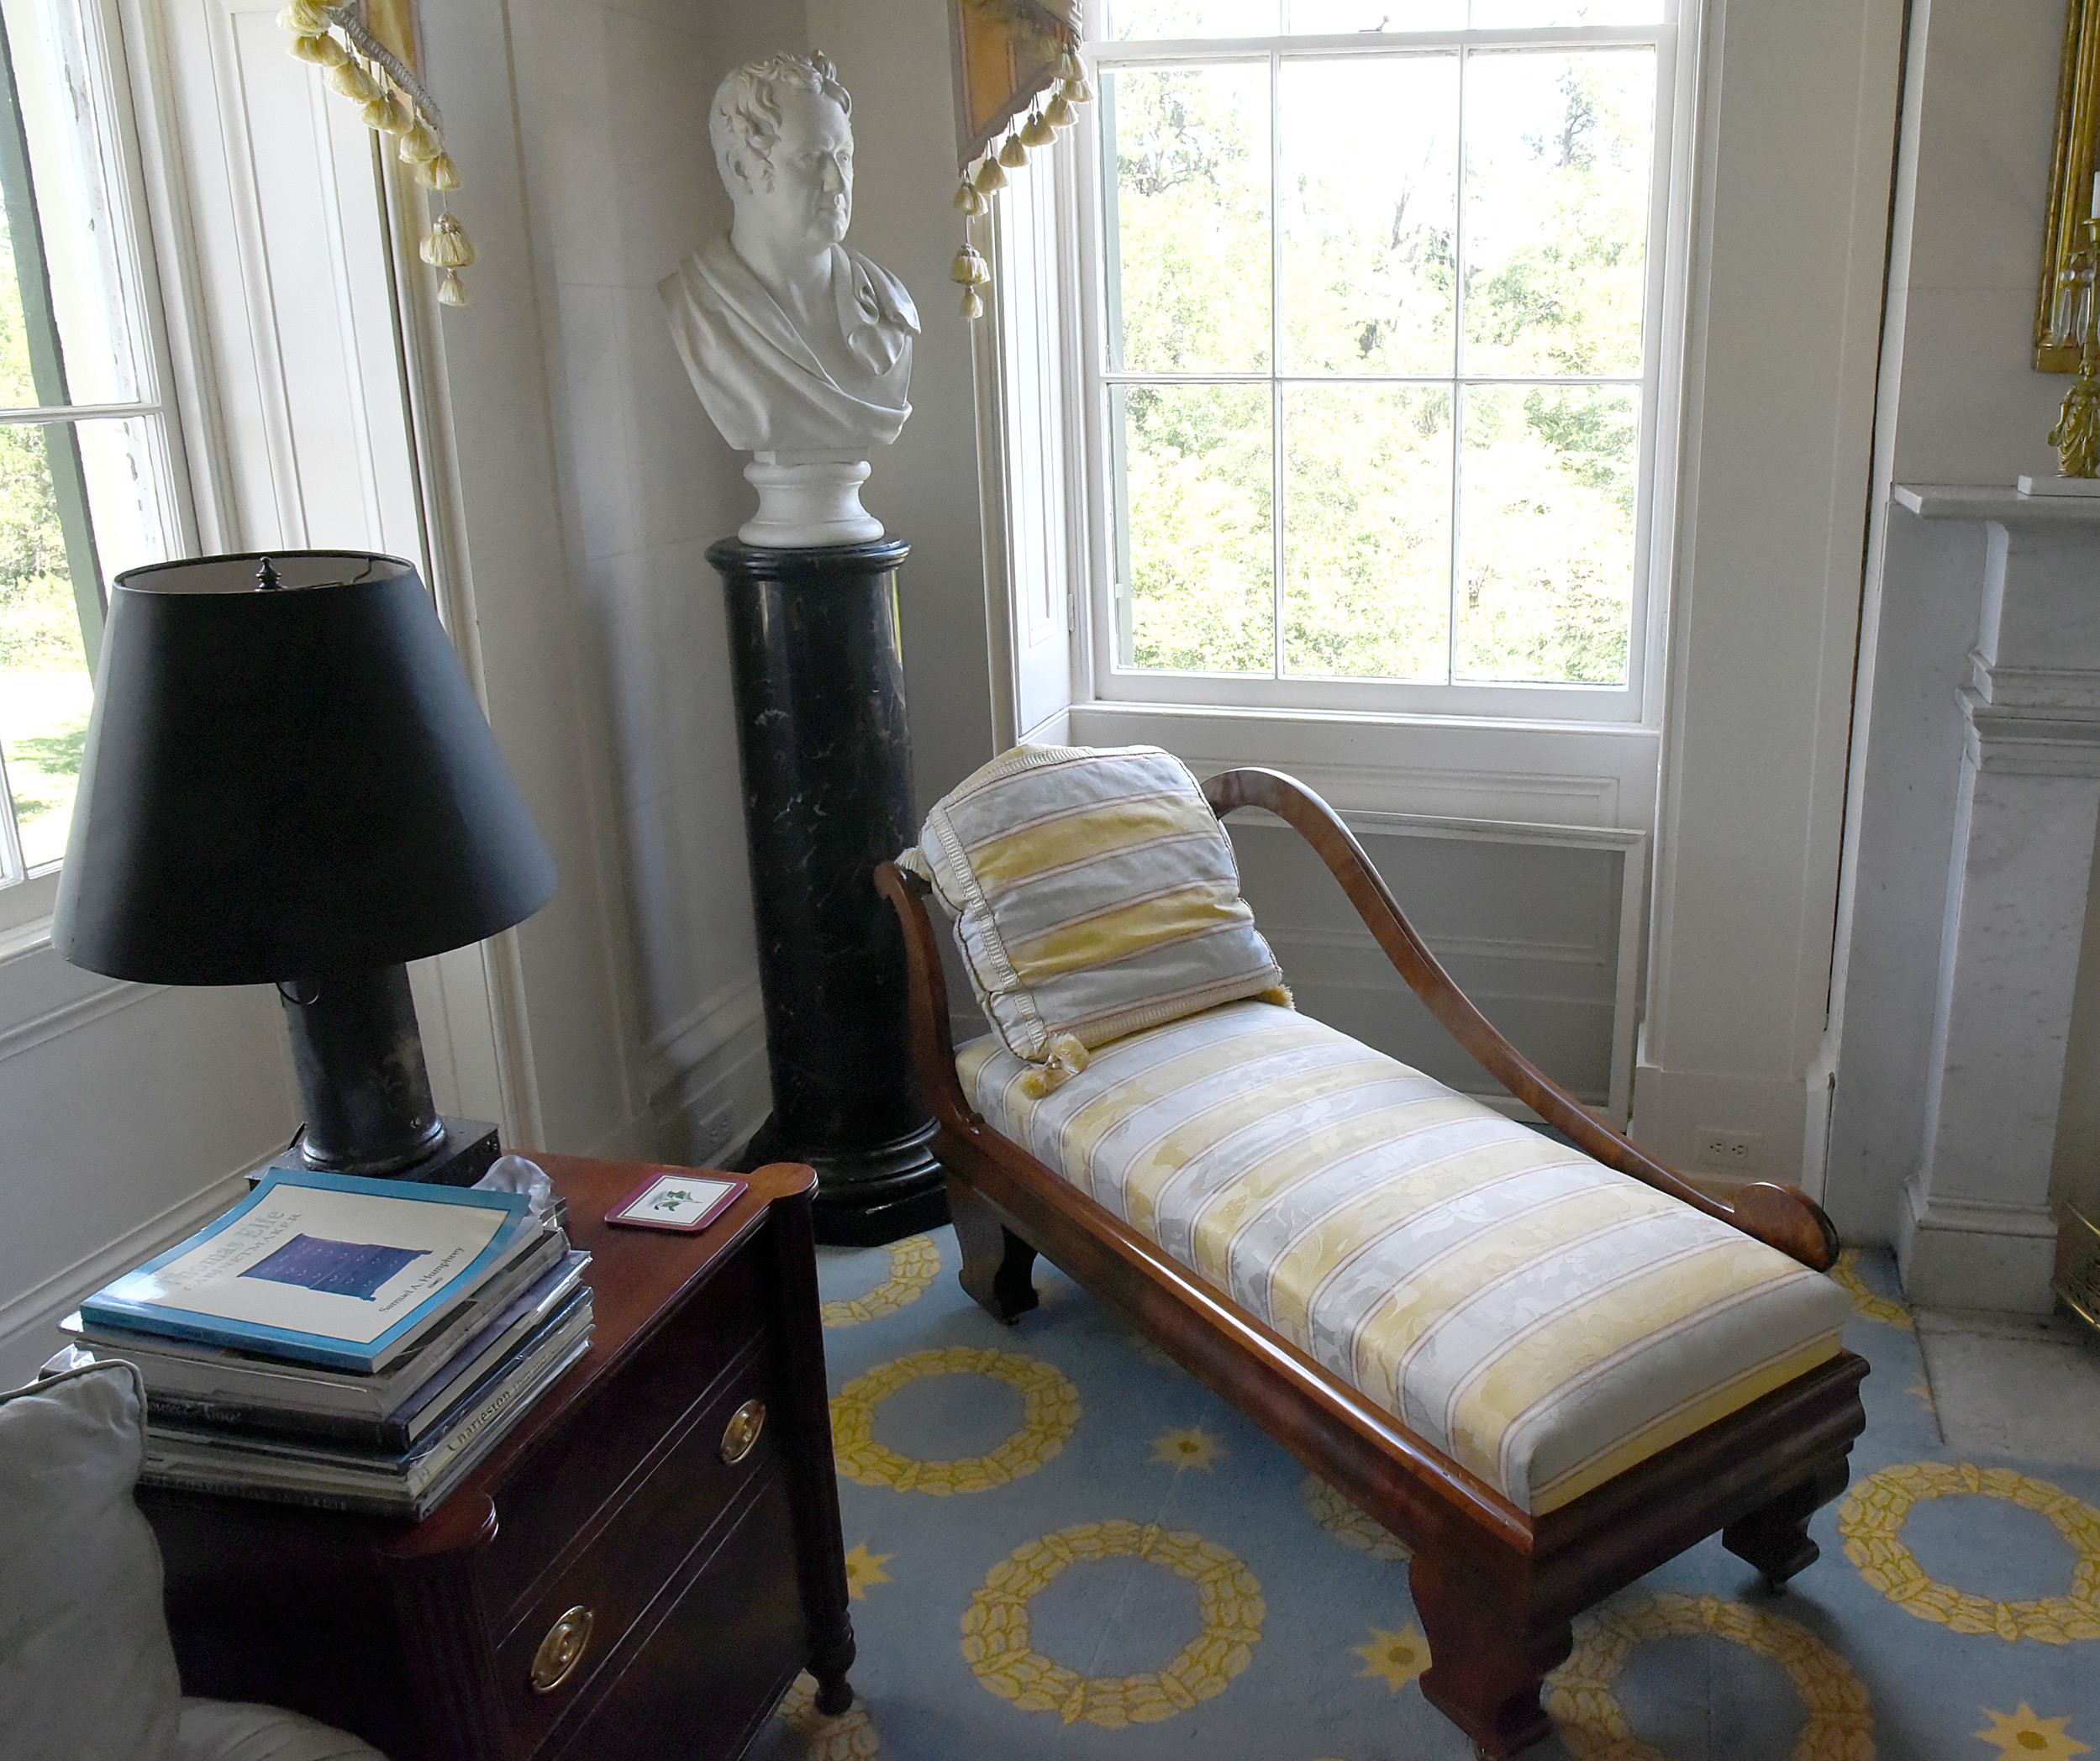 A bust overlooks a reading area in one of the rooms in the Millford Plantation house.